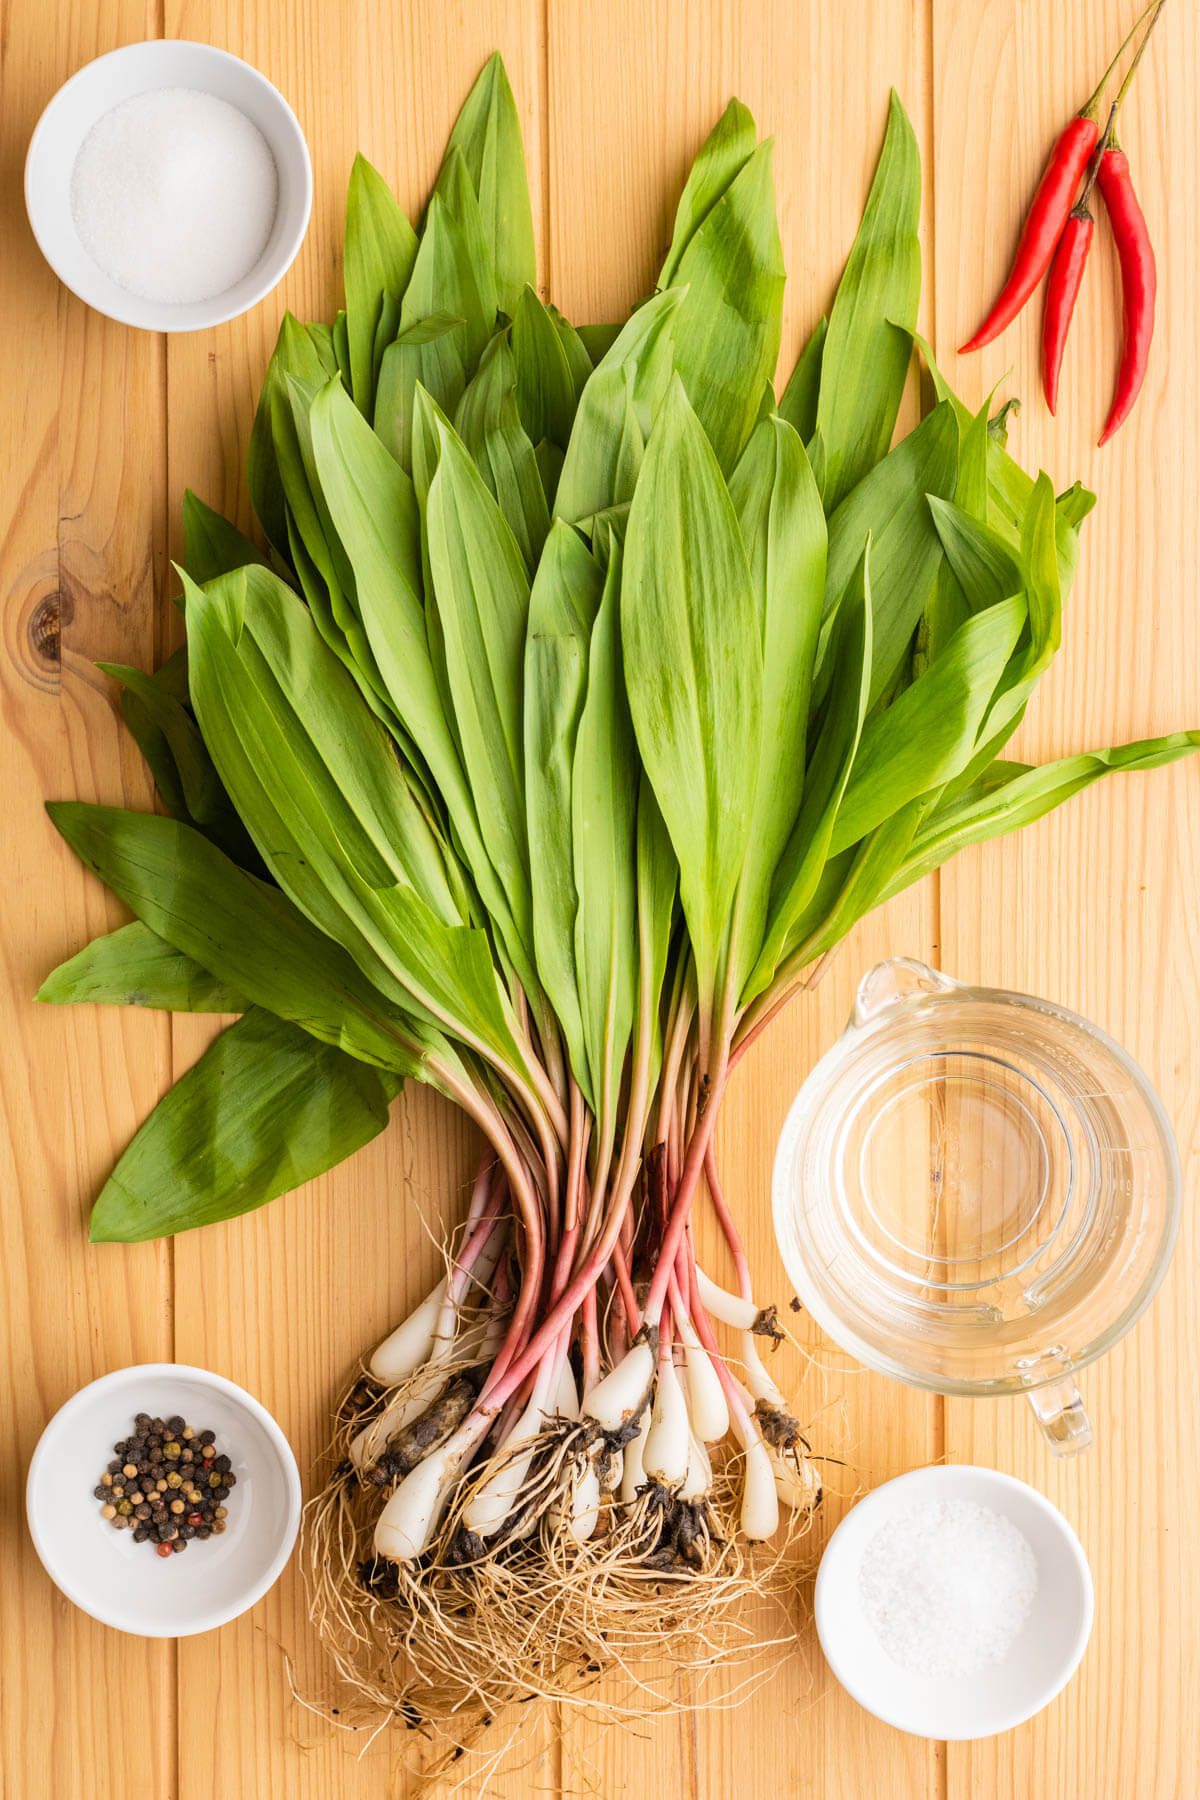 Ingredients used to sweet pickle wild ramps.